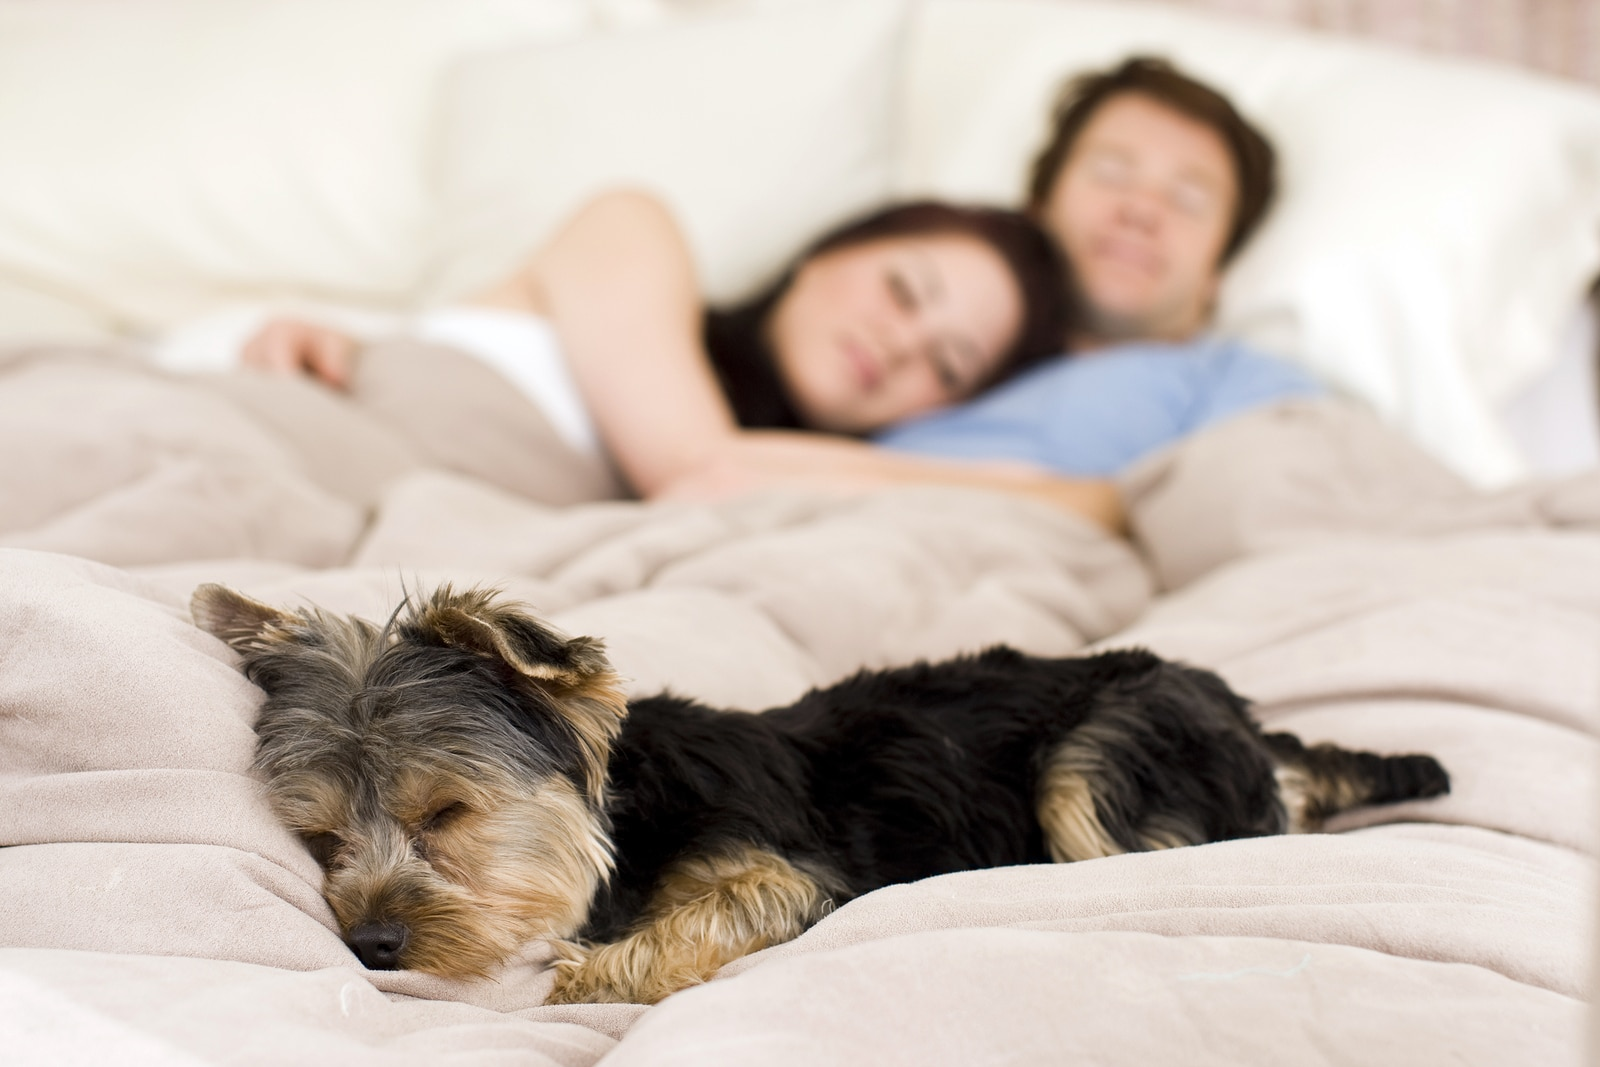 Couple lying in bed in background, while Yorkie in bed is in foreground